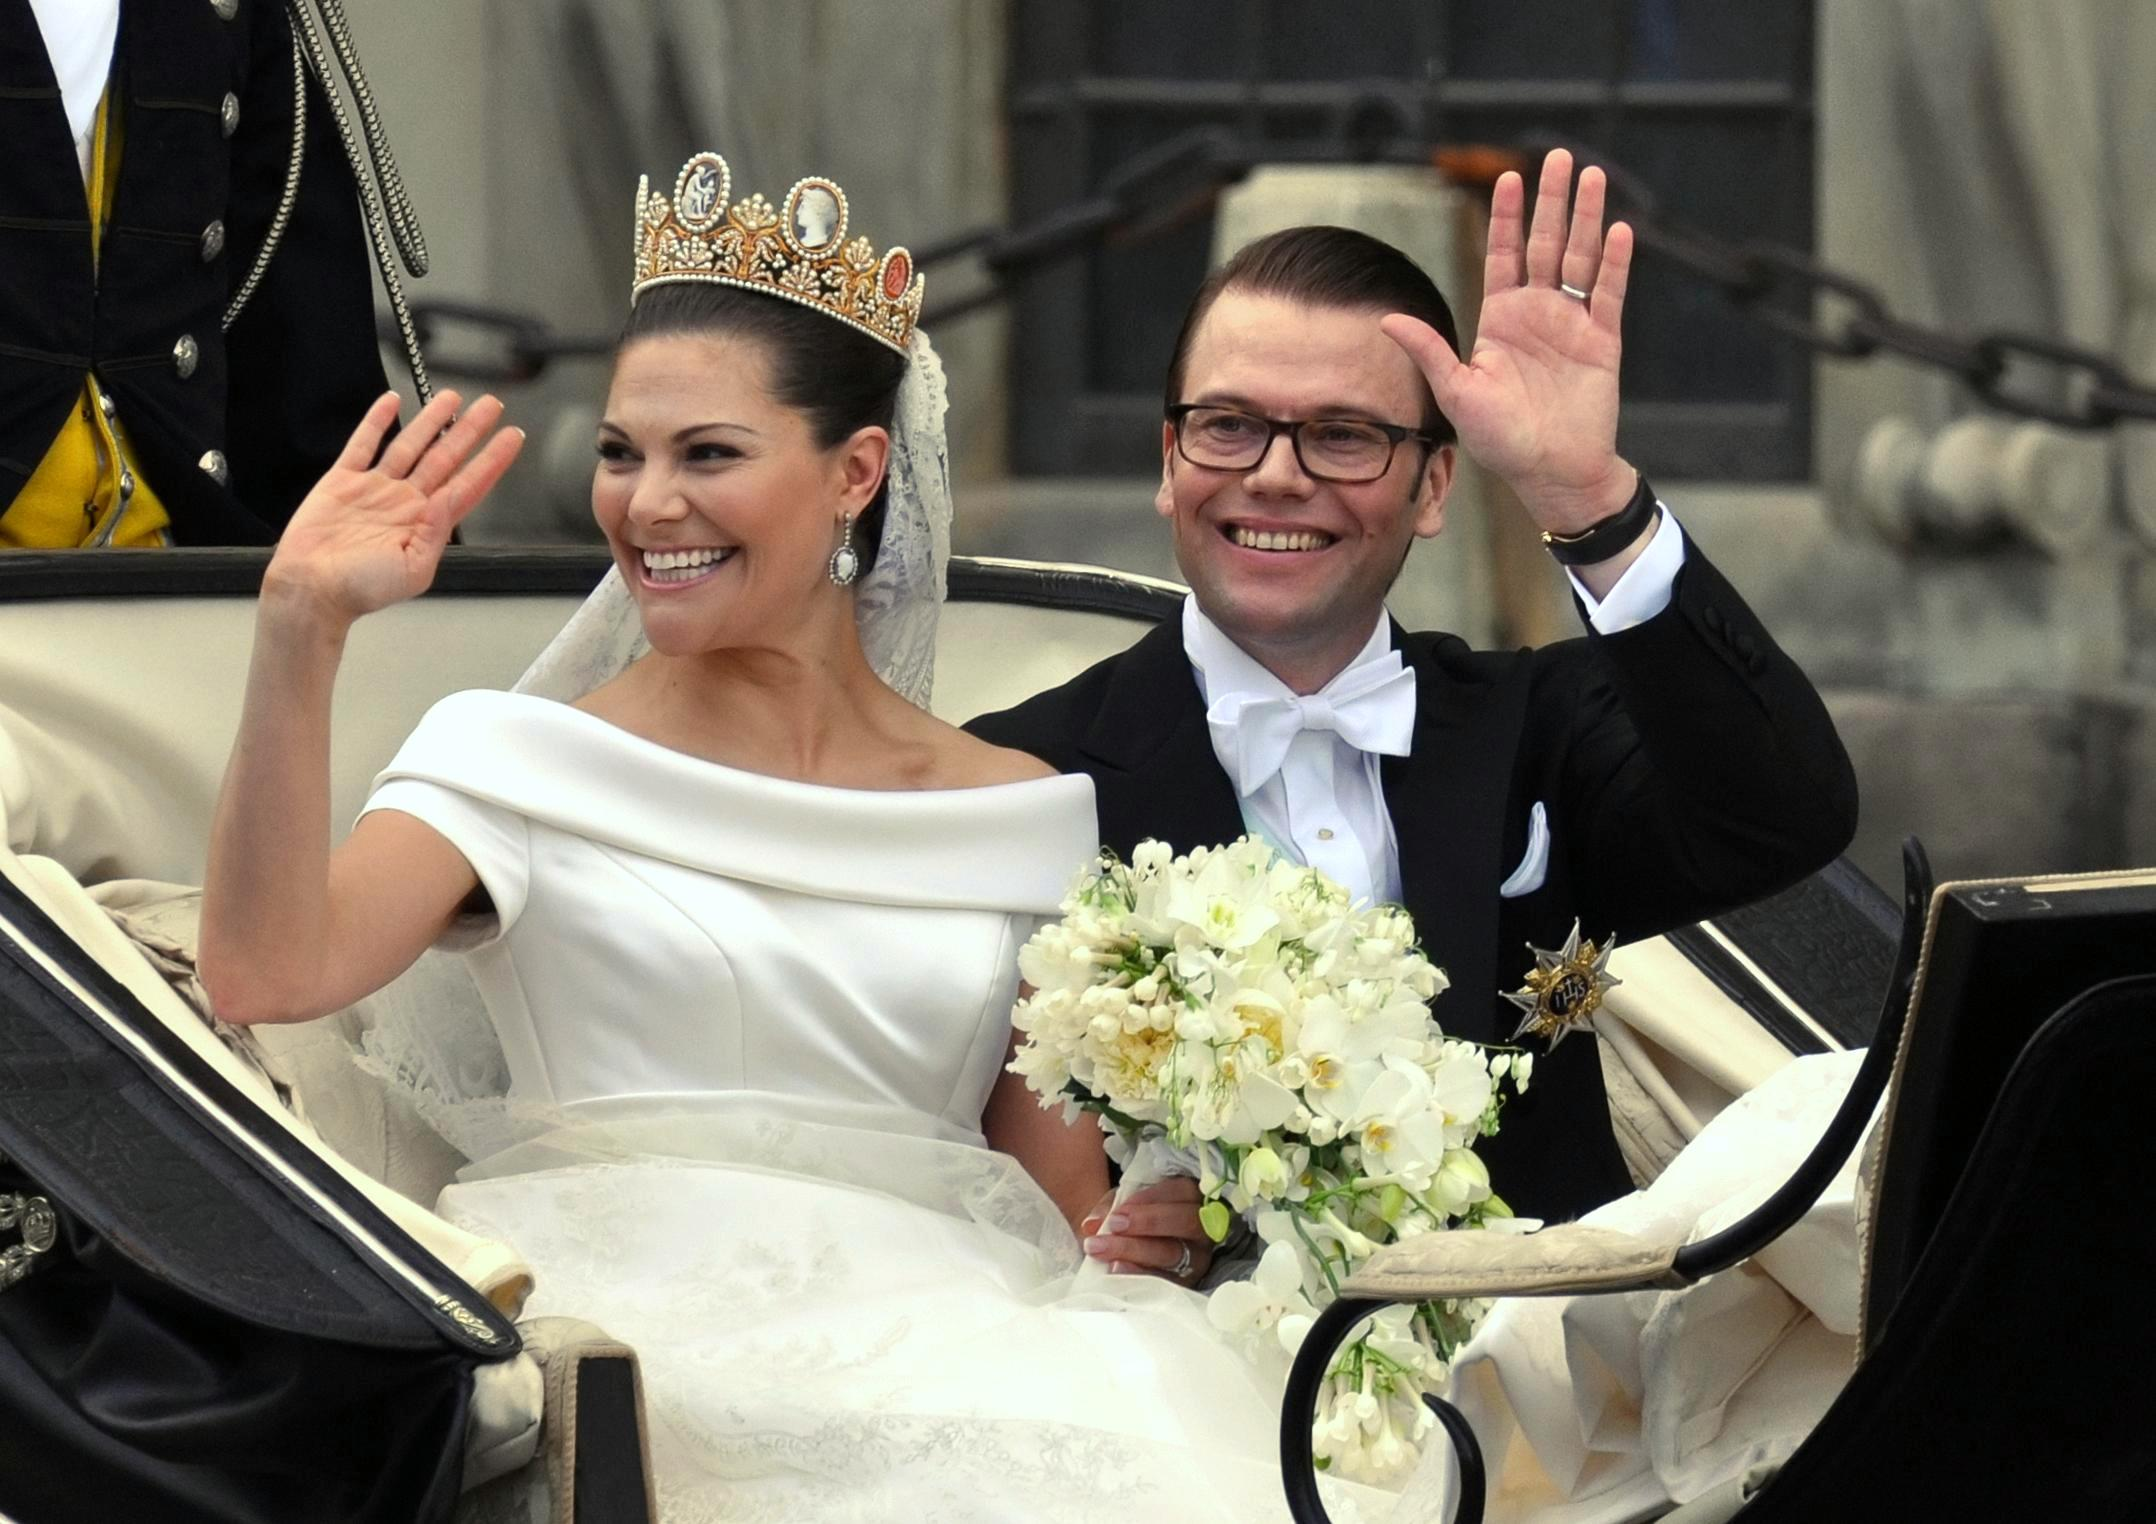 Wedding of Victoria, Crown Princess of Sweden, and Daniel Westling